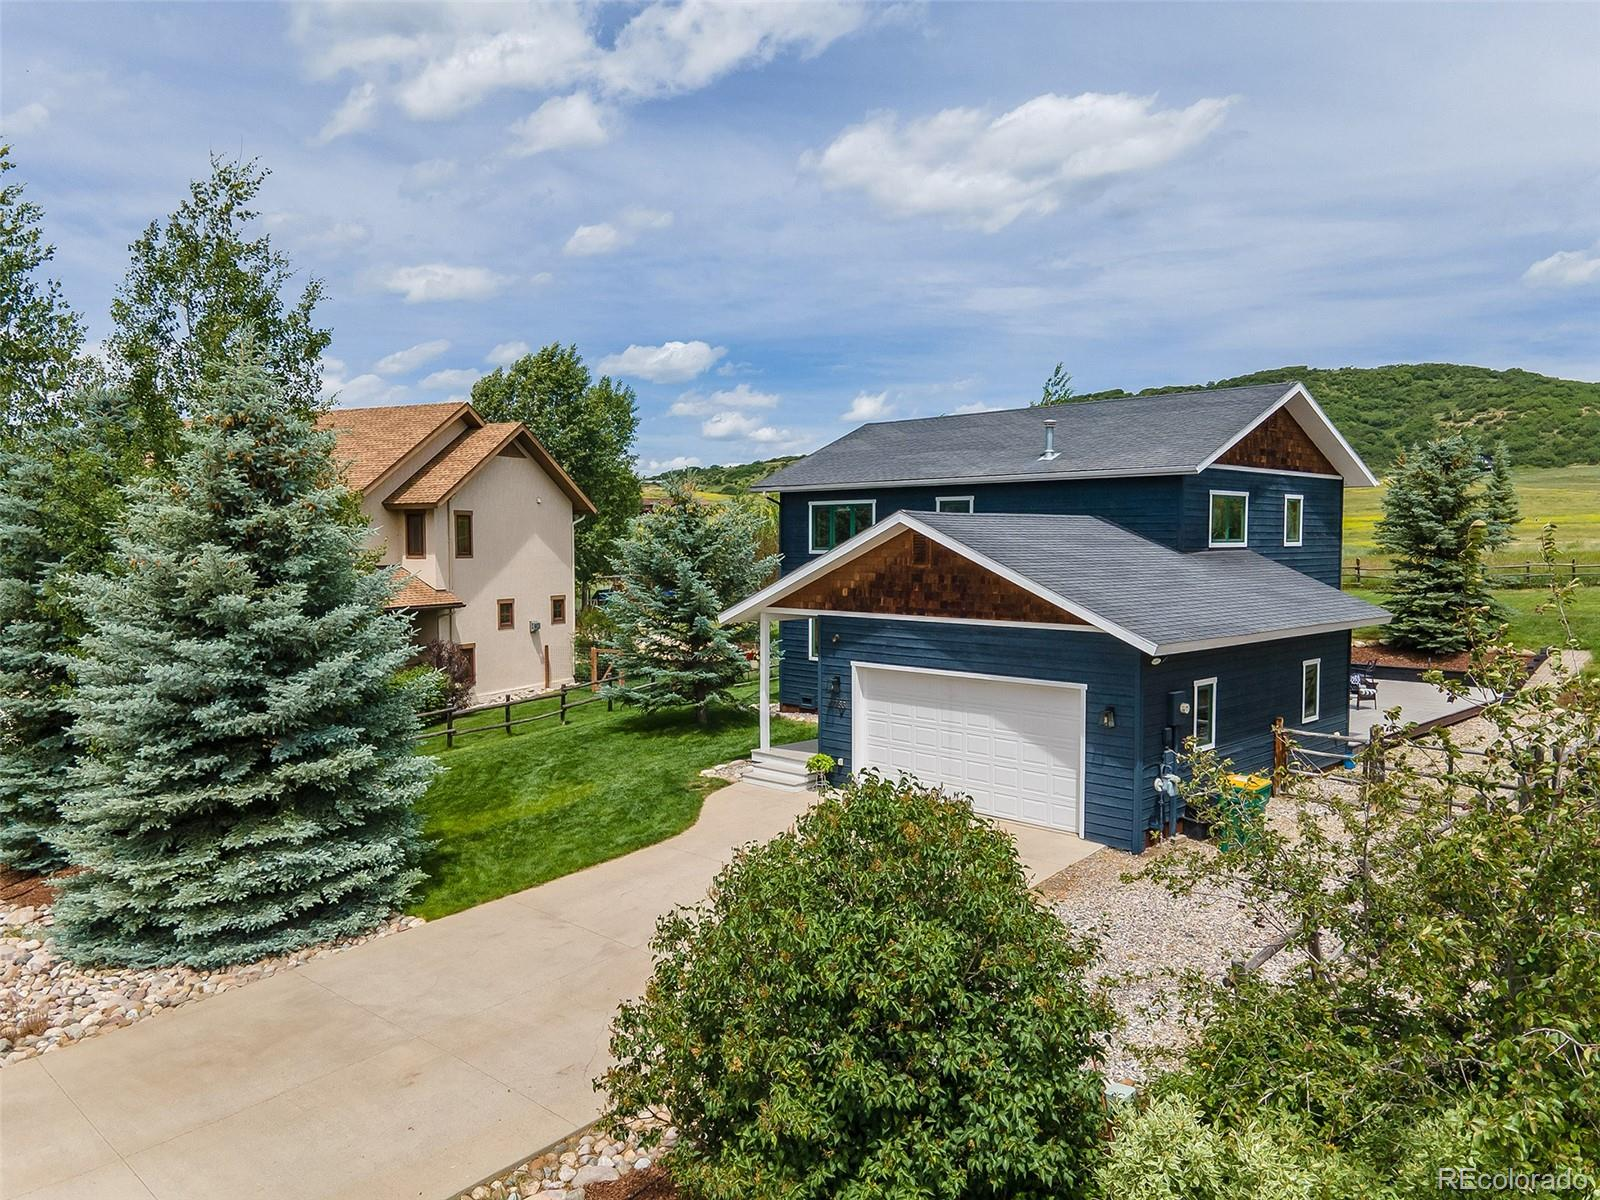 MLS# 2884564 - 1 - 27783 Silver Spur Street, Steamboat Springs, CO 80487